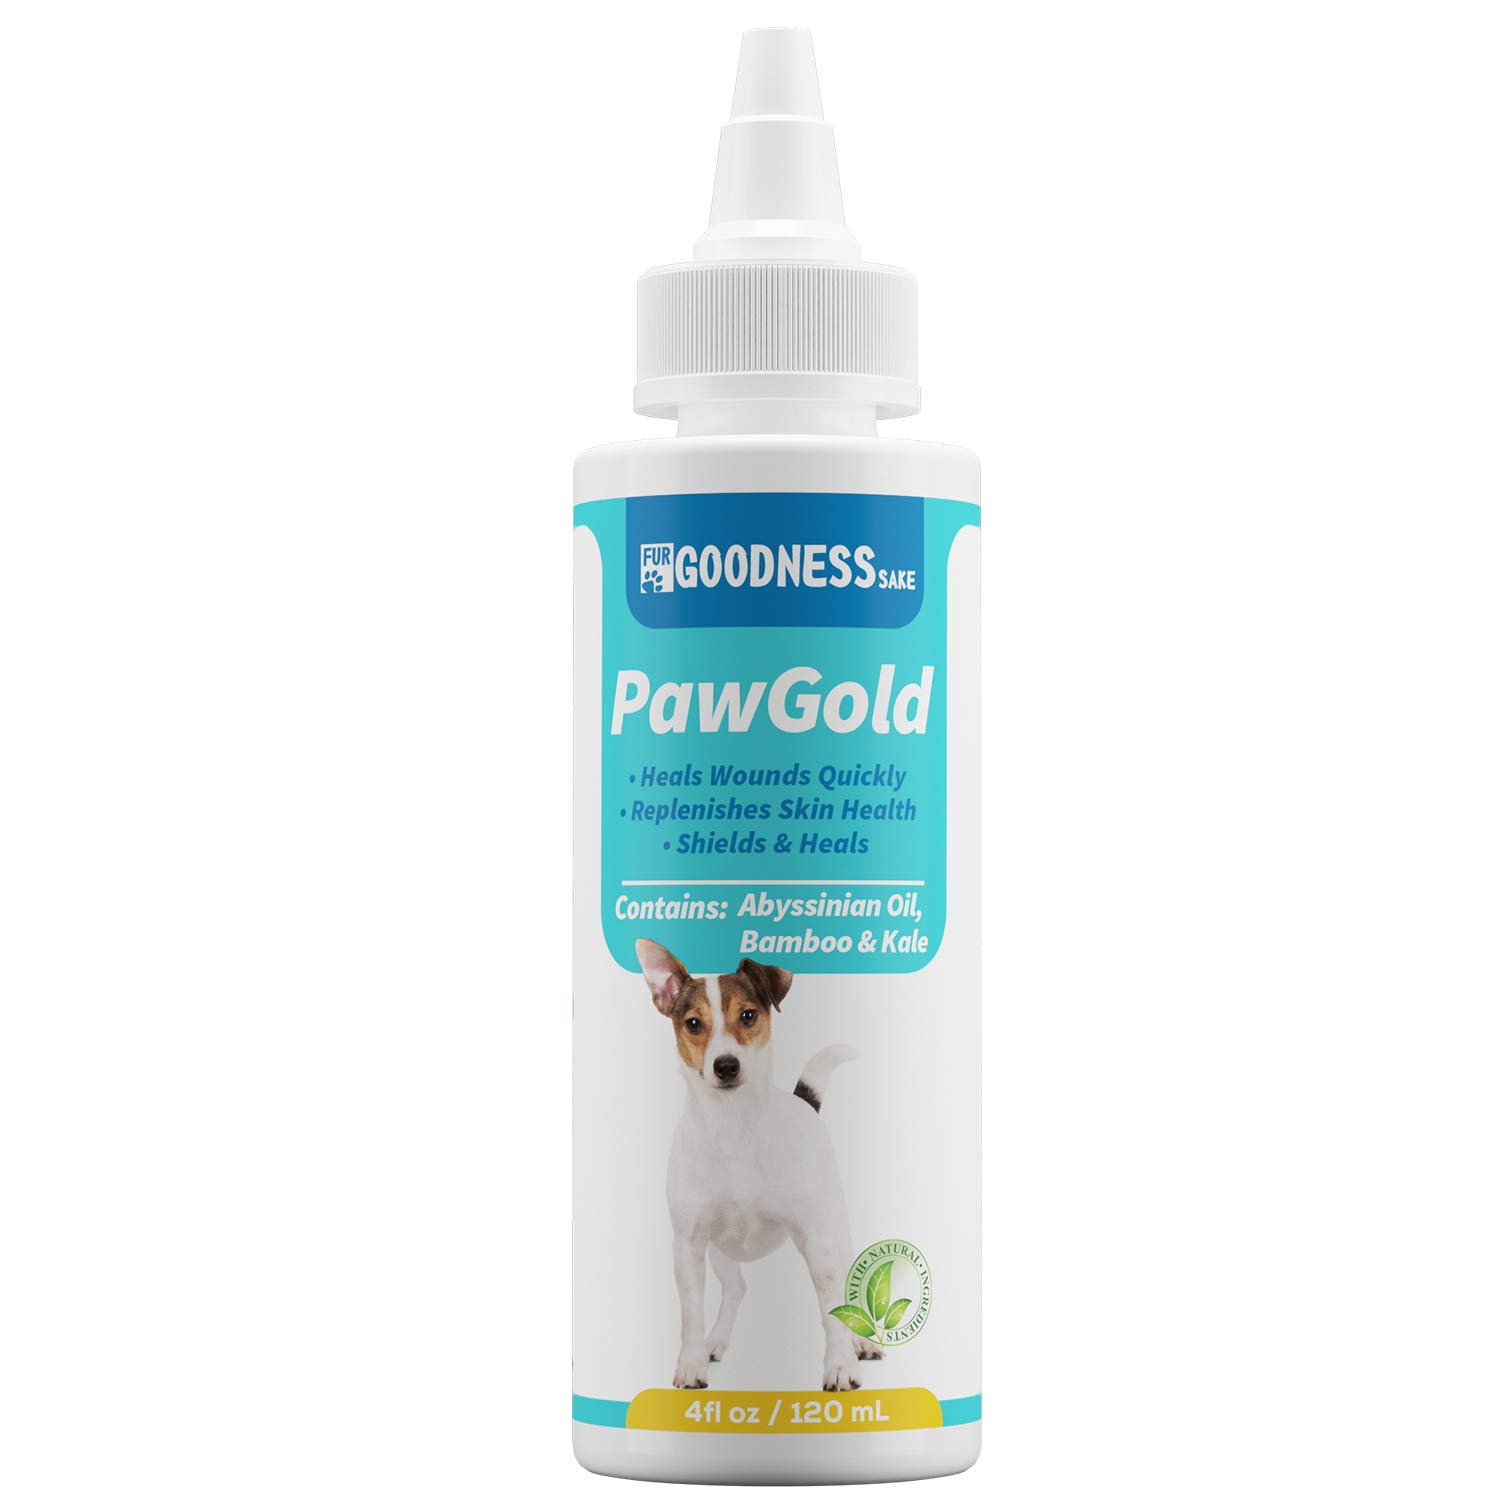 Fur Goodness Sake Dog Paw Balm & Paw Soother - Dog Paw Protection Best for Summer Heat - Argon-Oil Paw Wax and Pad Moisturizer - Non-Slip and Lick Safe by Fur Goodness Sake